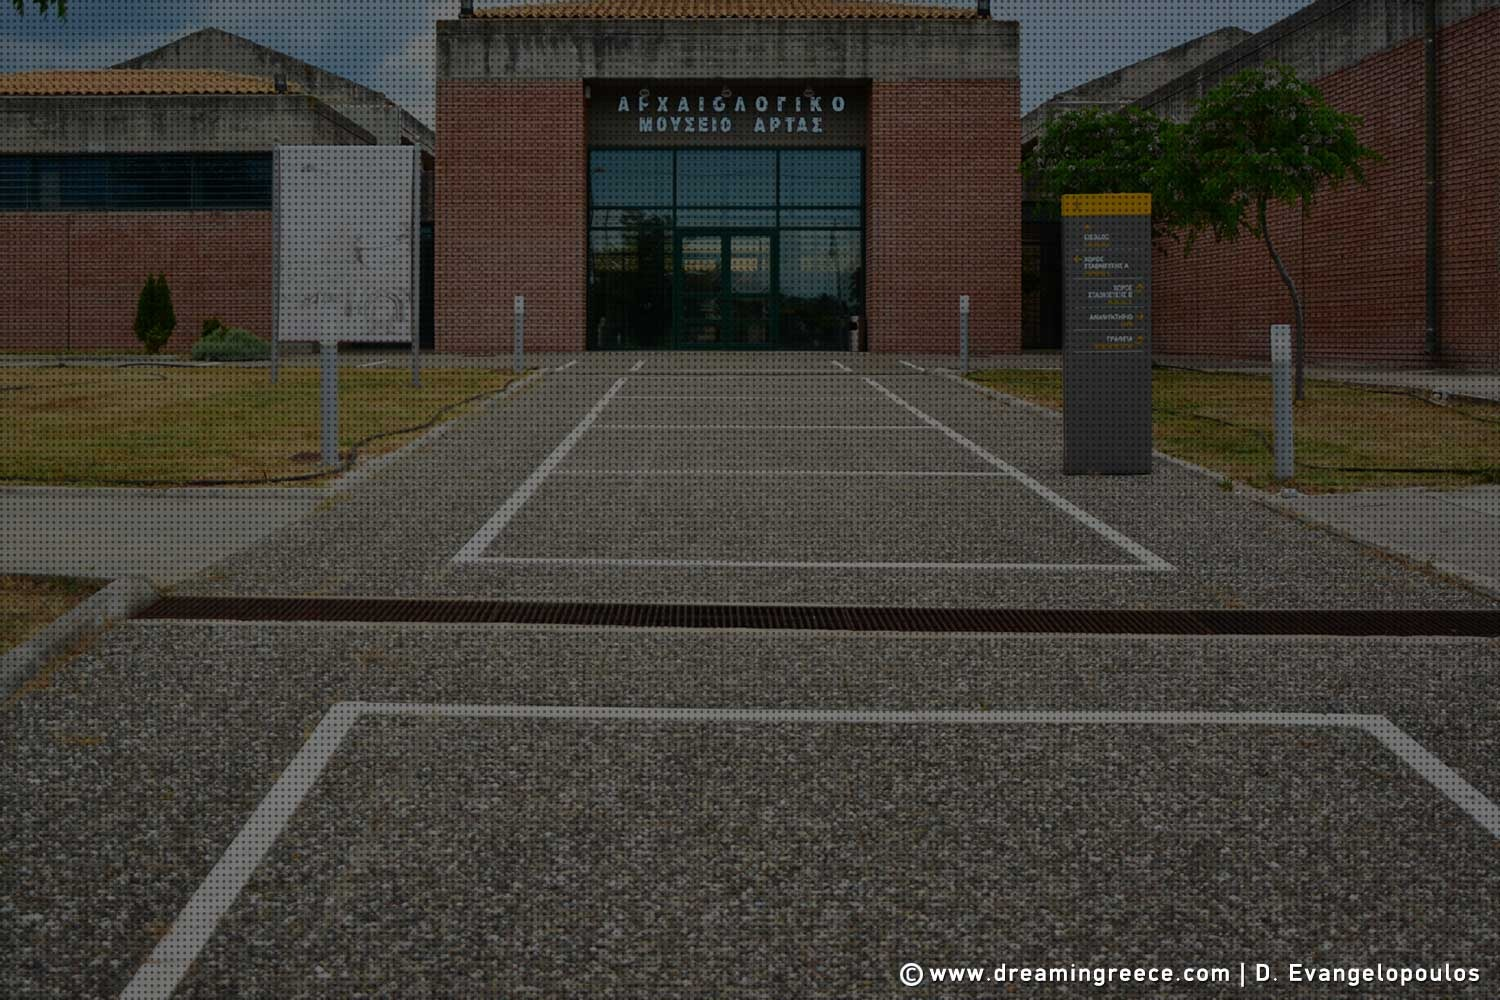 Museums in Greece. Archaeological Museum of Arta.